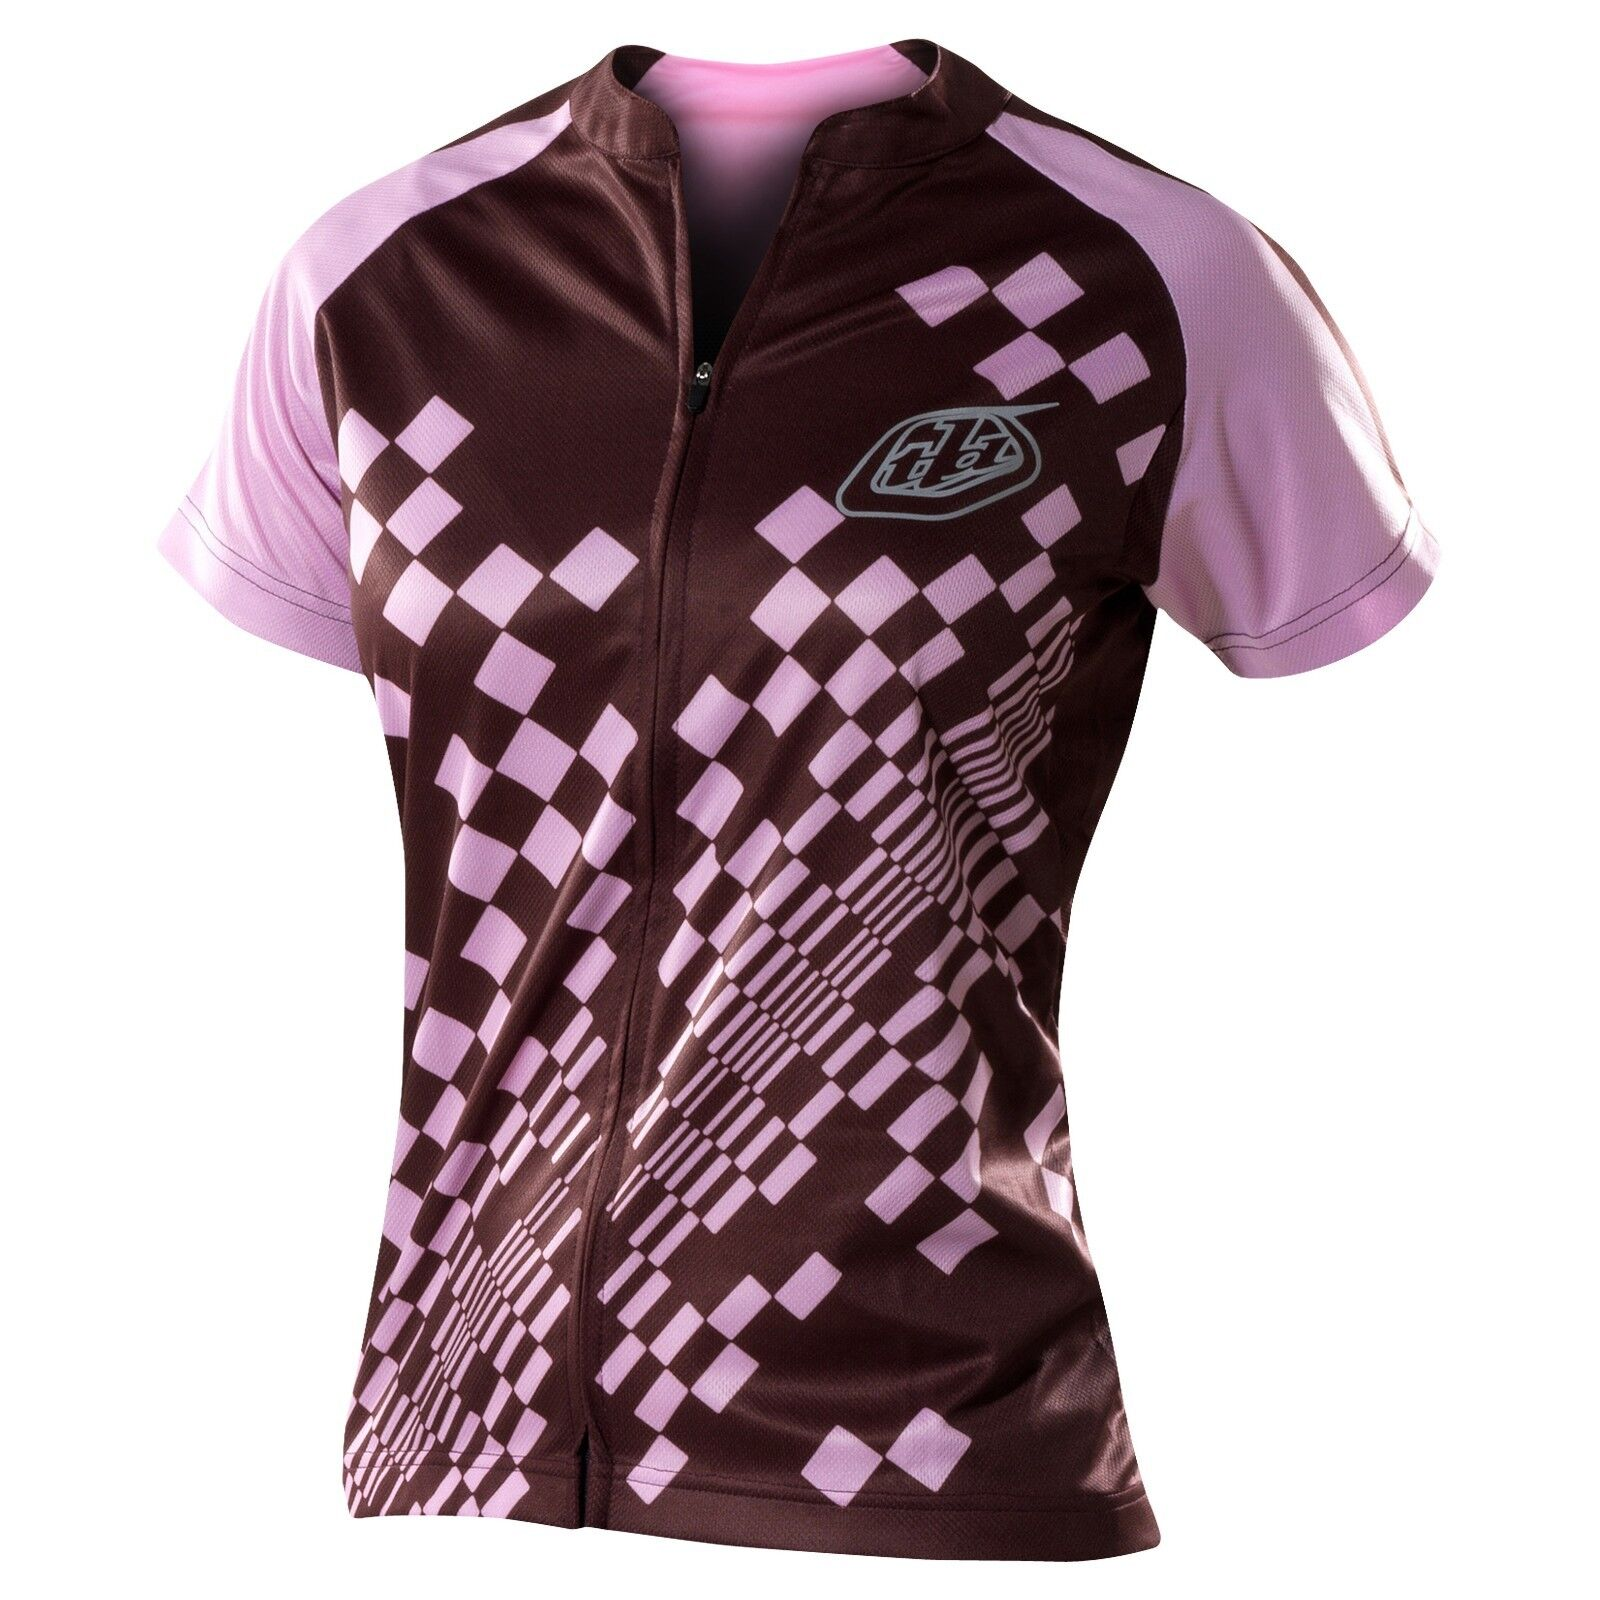 Troy Lee Designs Women's Bicycle Cycling Ace Jersey Pink Brown Medium MD